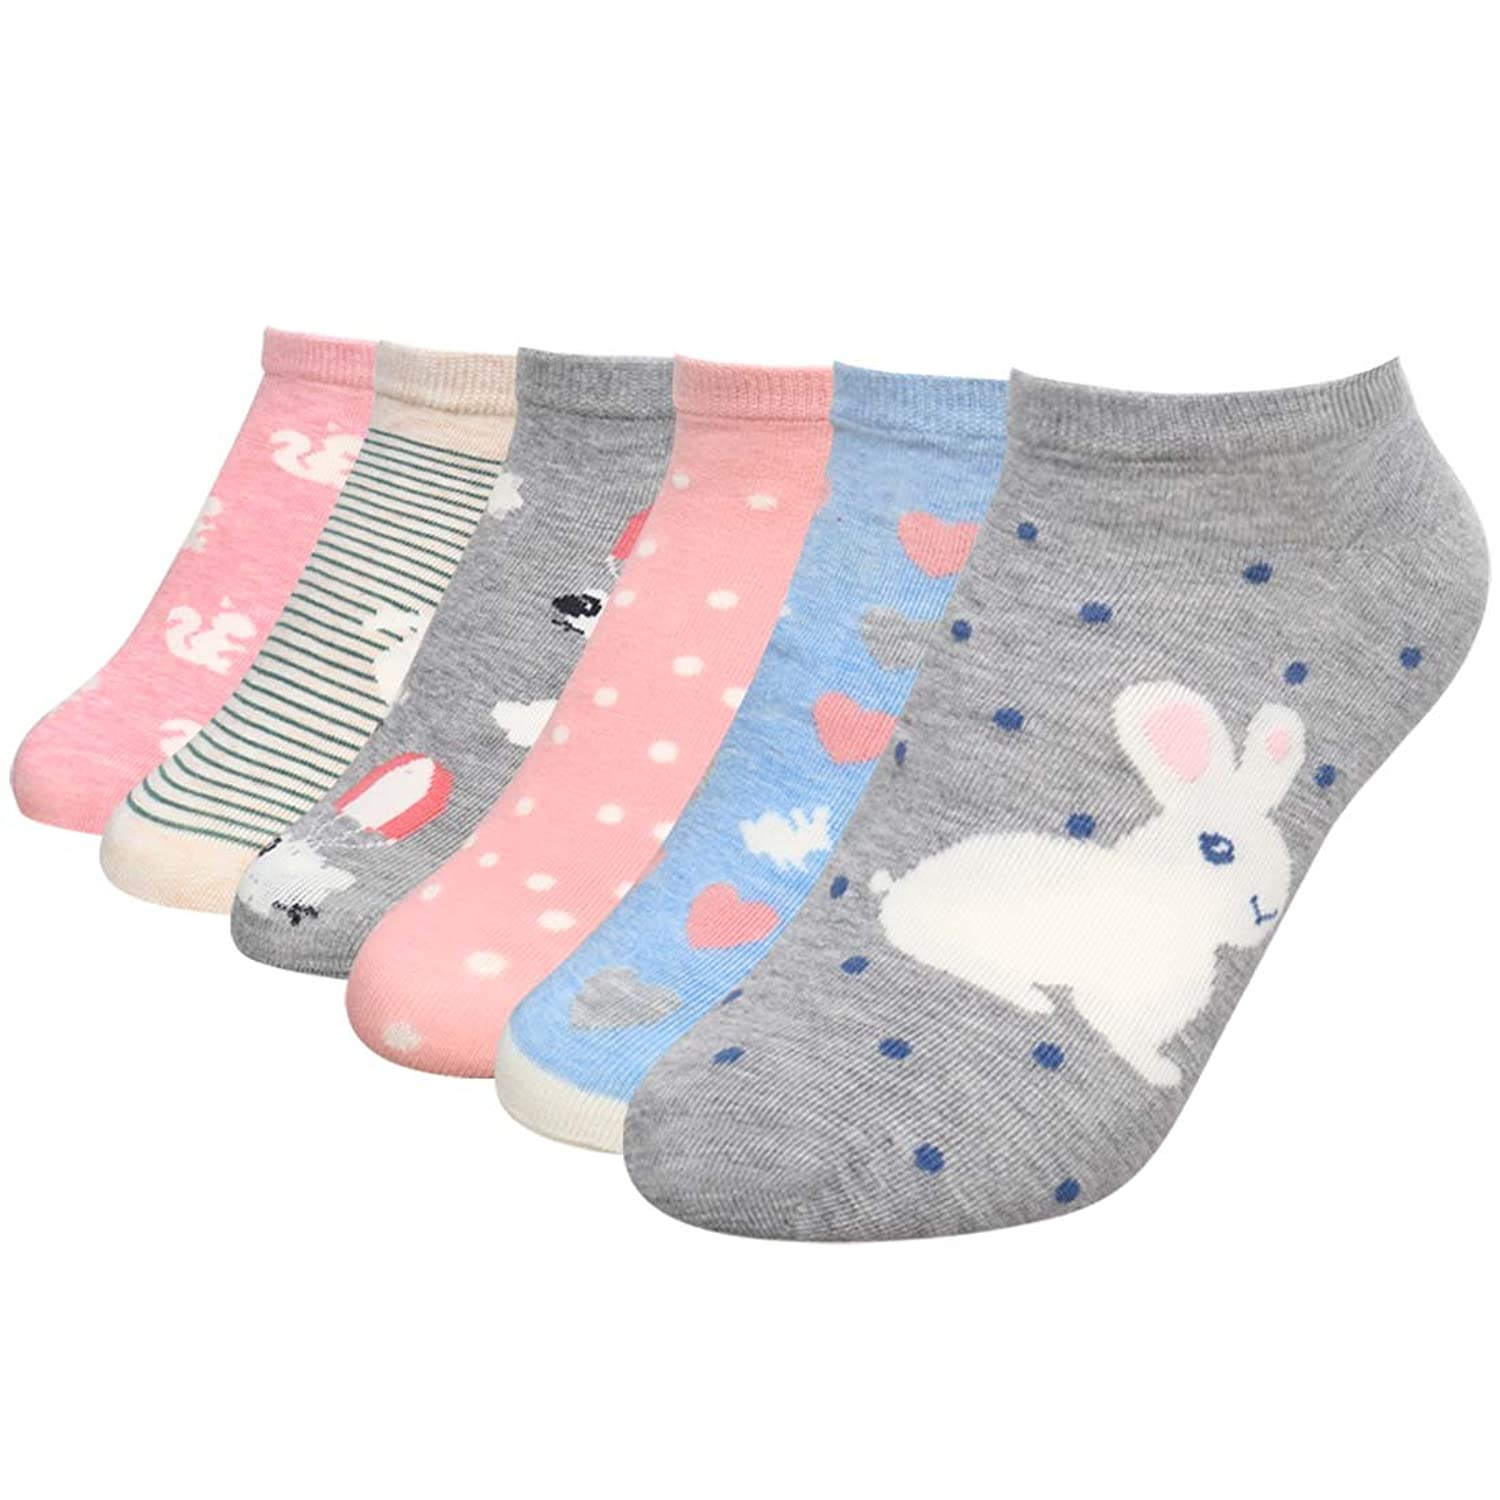 Bundle Monster Womens 6 Pairs Low Cut Black Mix Style Cotton Blend Socks One Size - Cuddly Cute